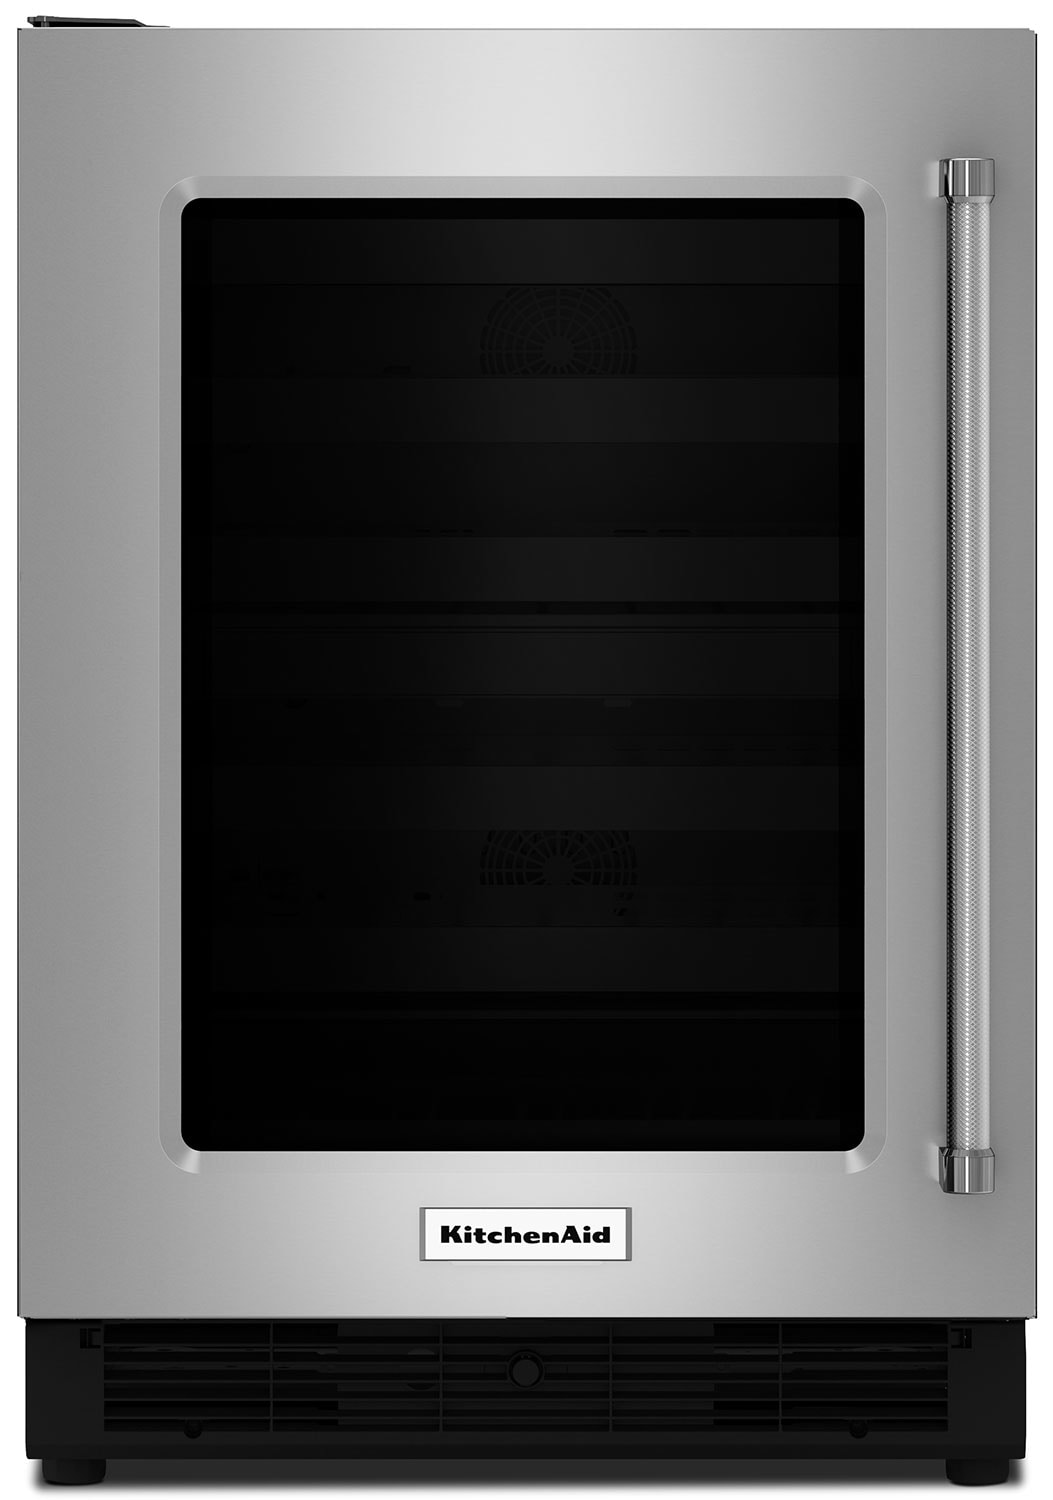 Refrigerators and Freezers - KitchenAid Stainless Steel Undercounter Refrigerator w/ Left Door Swing (4.7 Cu. Ft.) - KURL204ESB